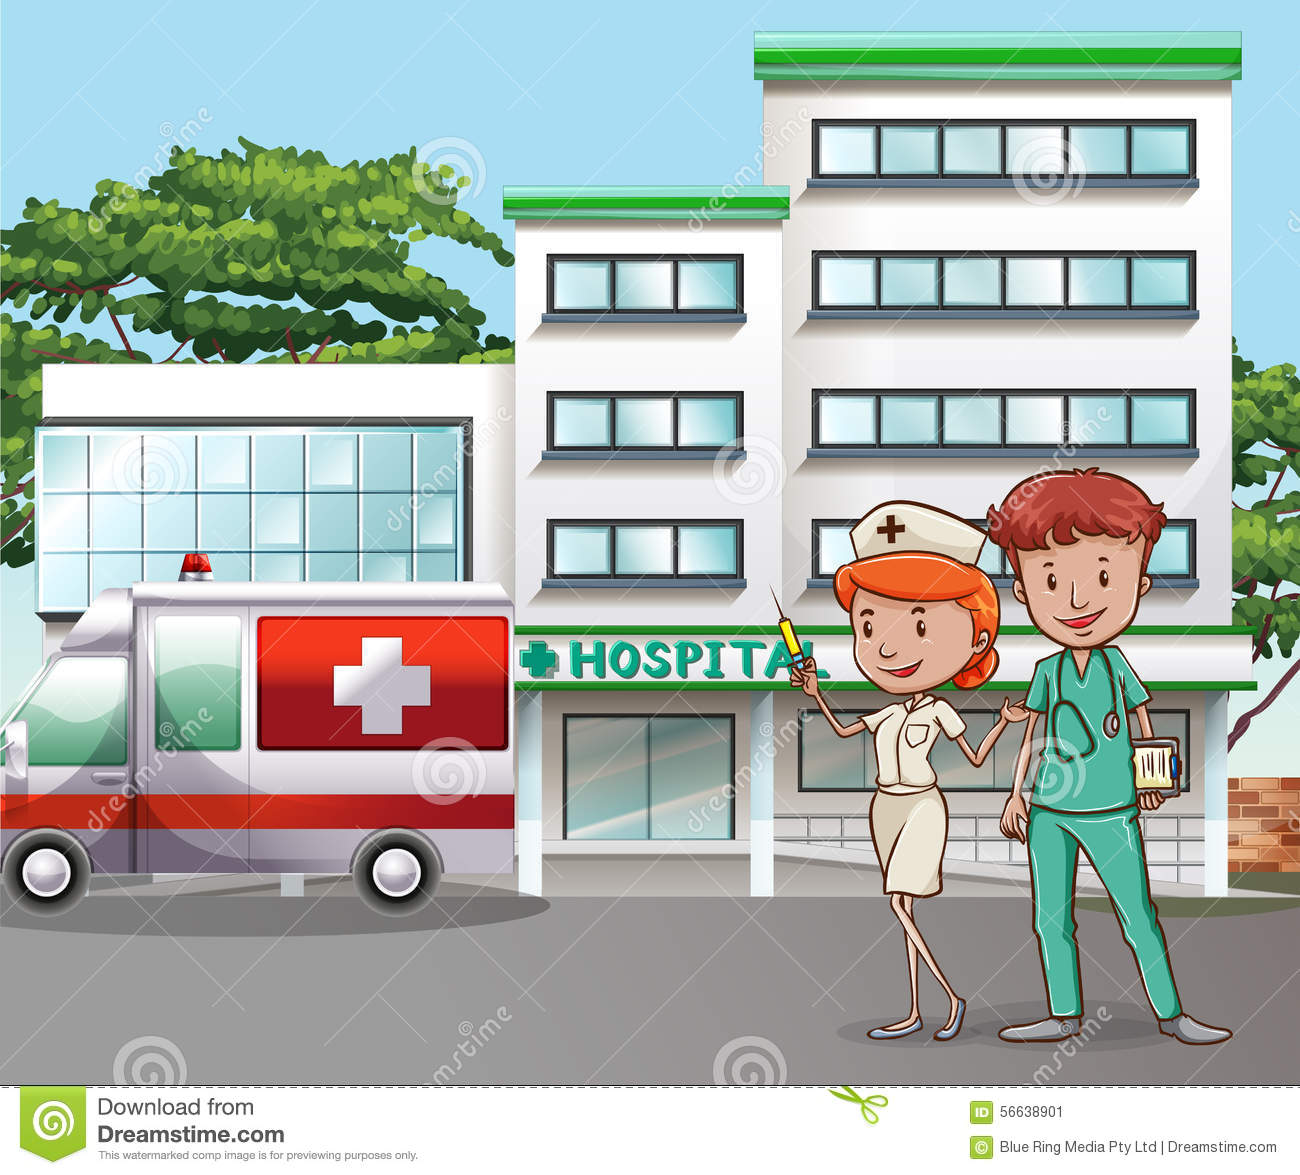 Hospital Stock Vector Image 56638901